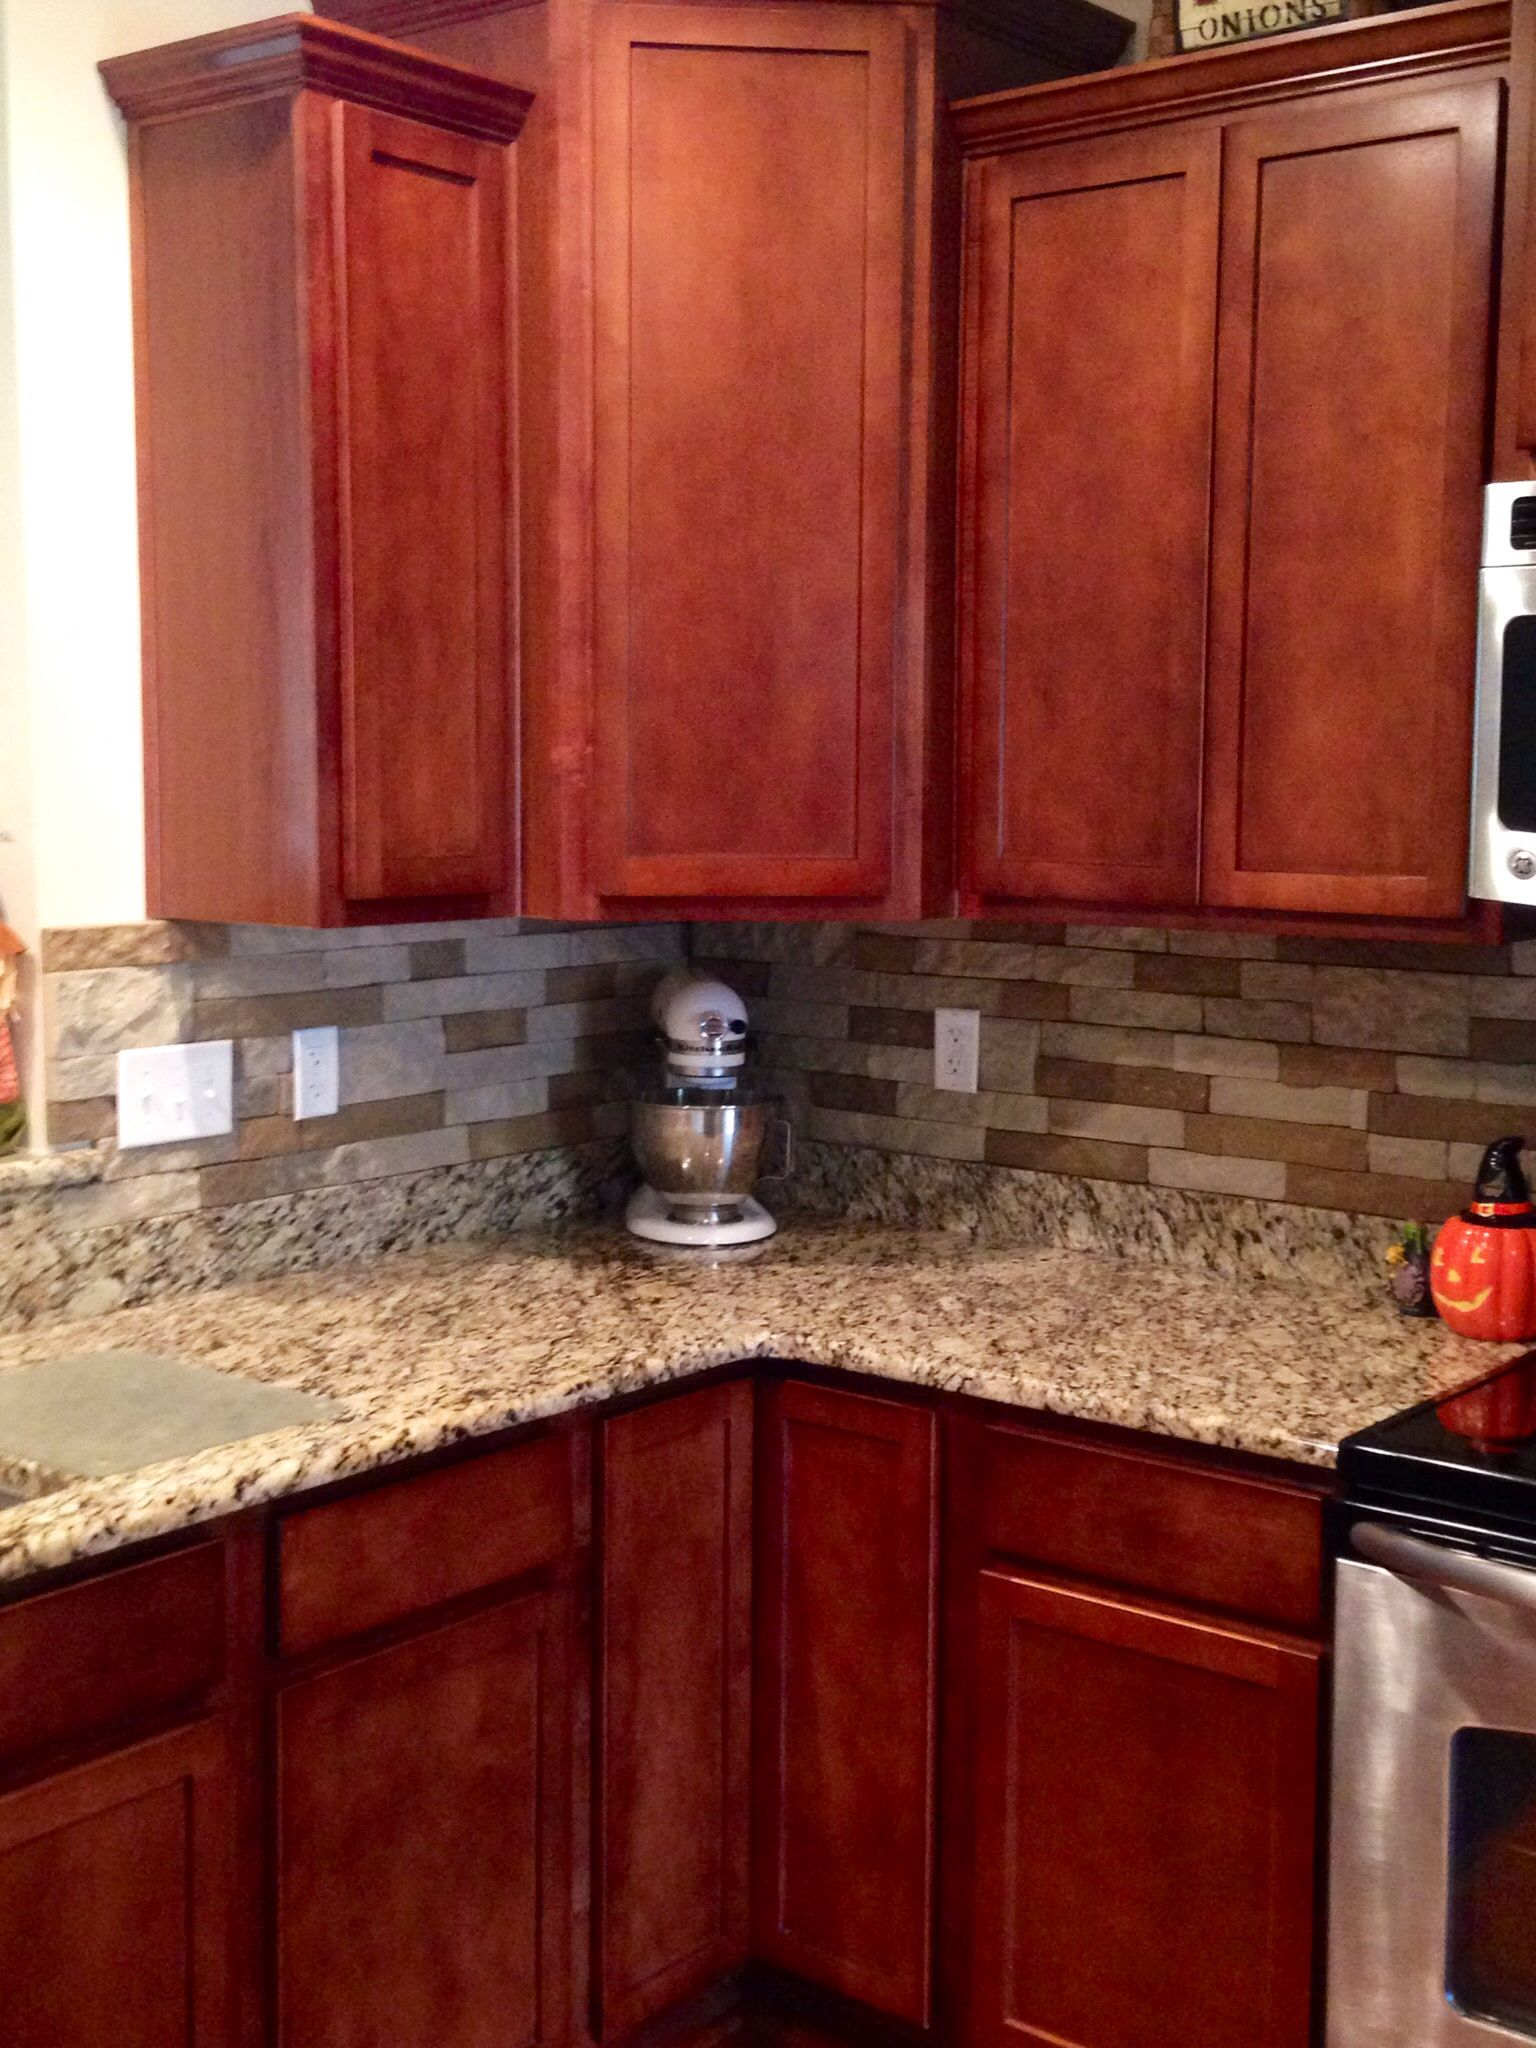 Airstone Backsplash in kitchen.